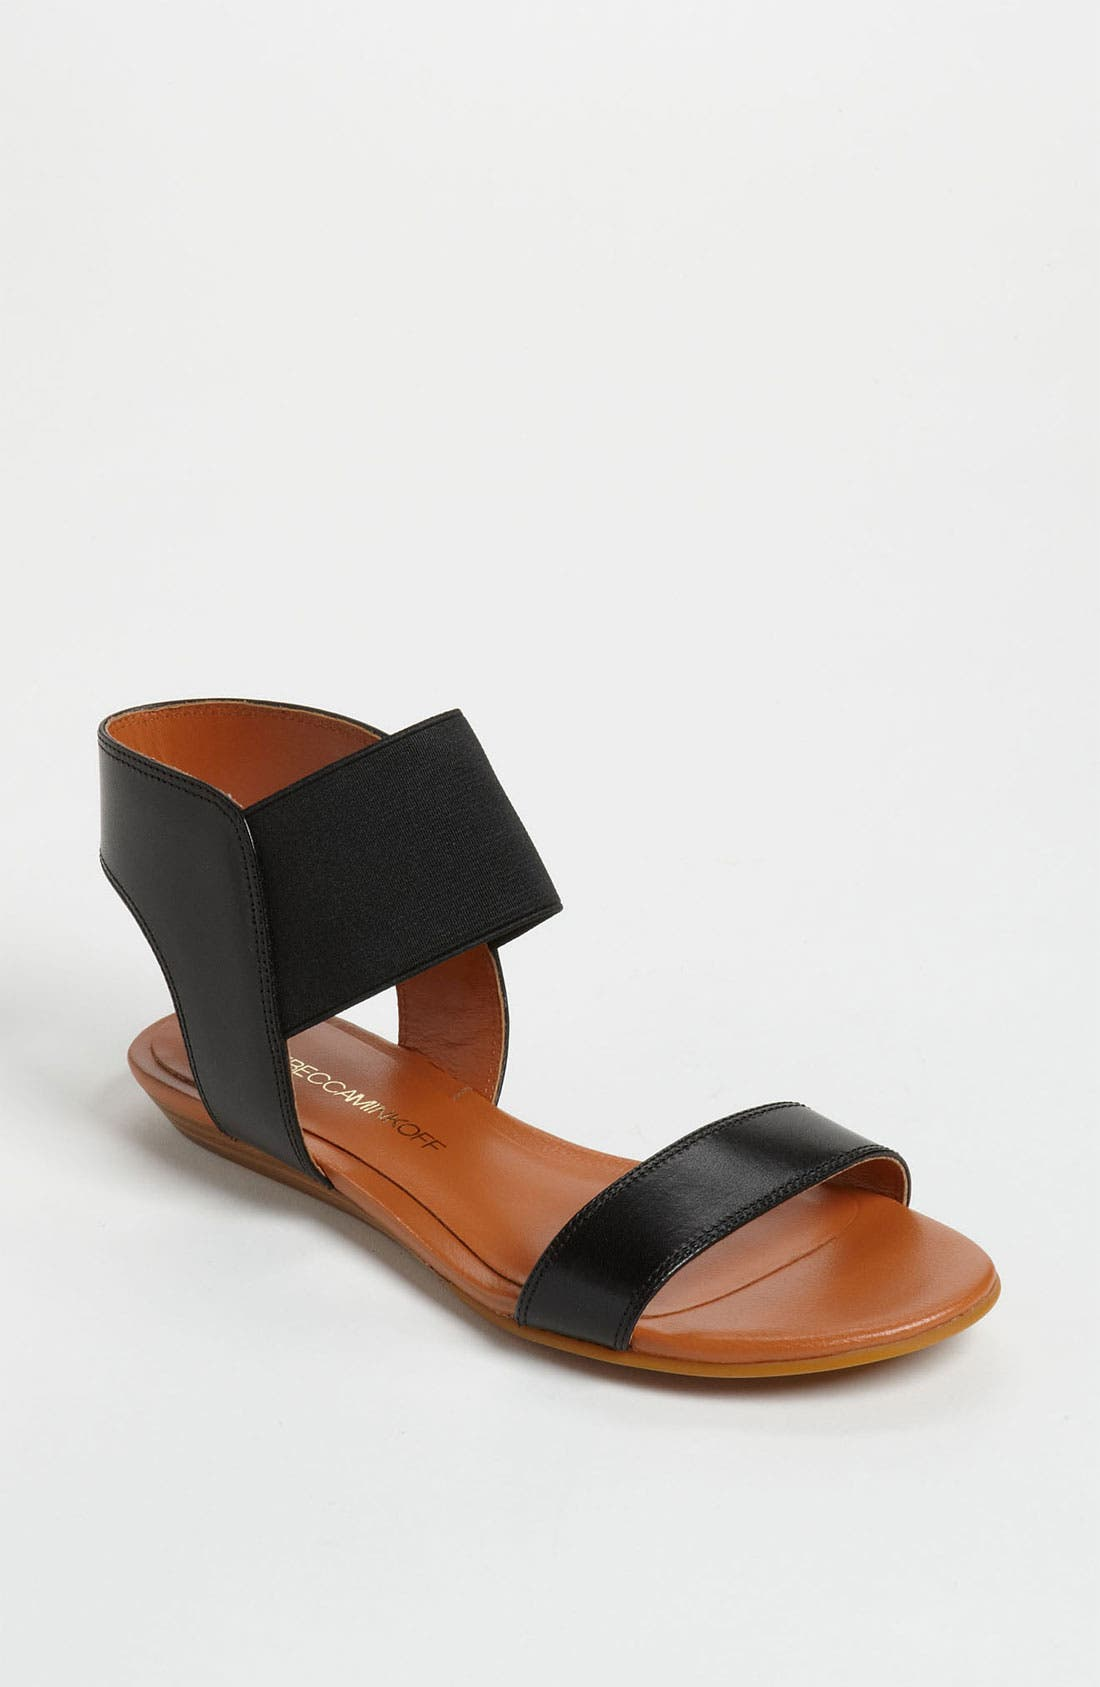 Main Image - Rebecca Minkoff 'Bazzle' Sandal (Online Only)